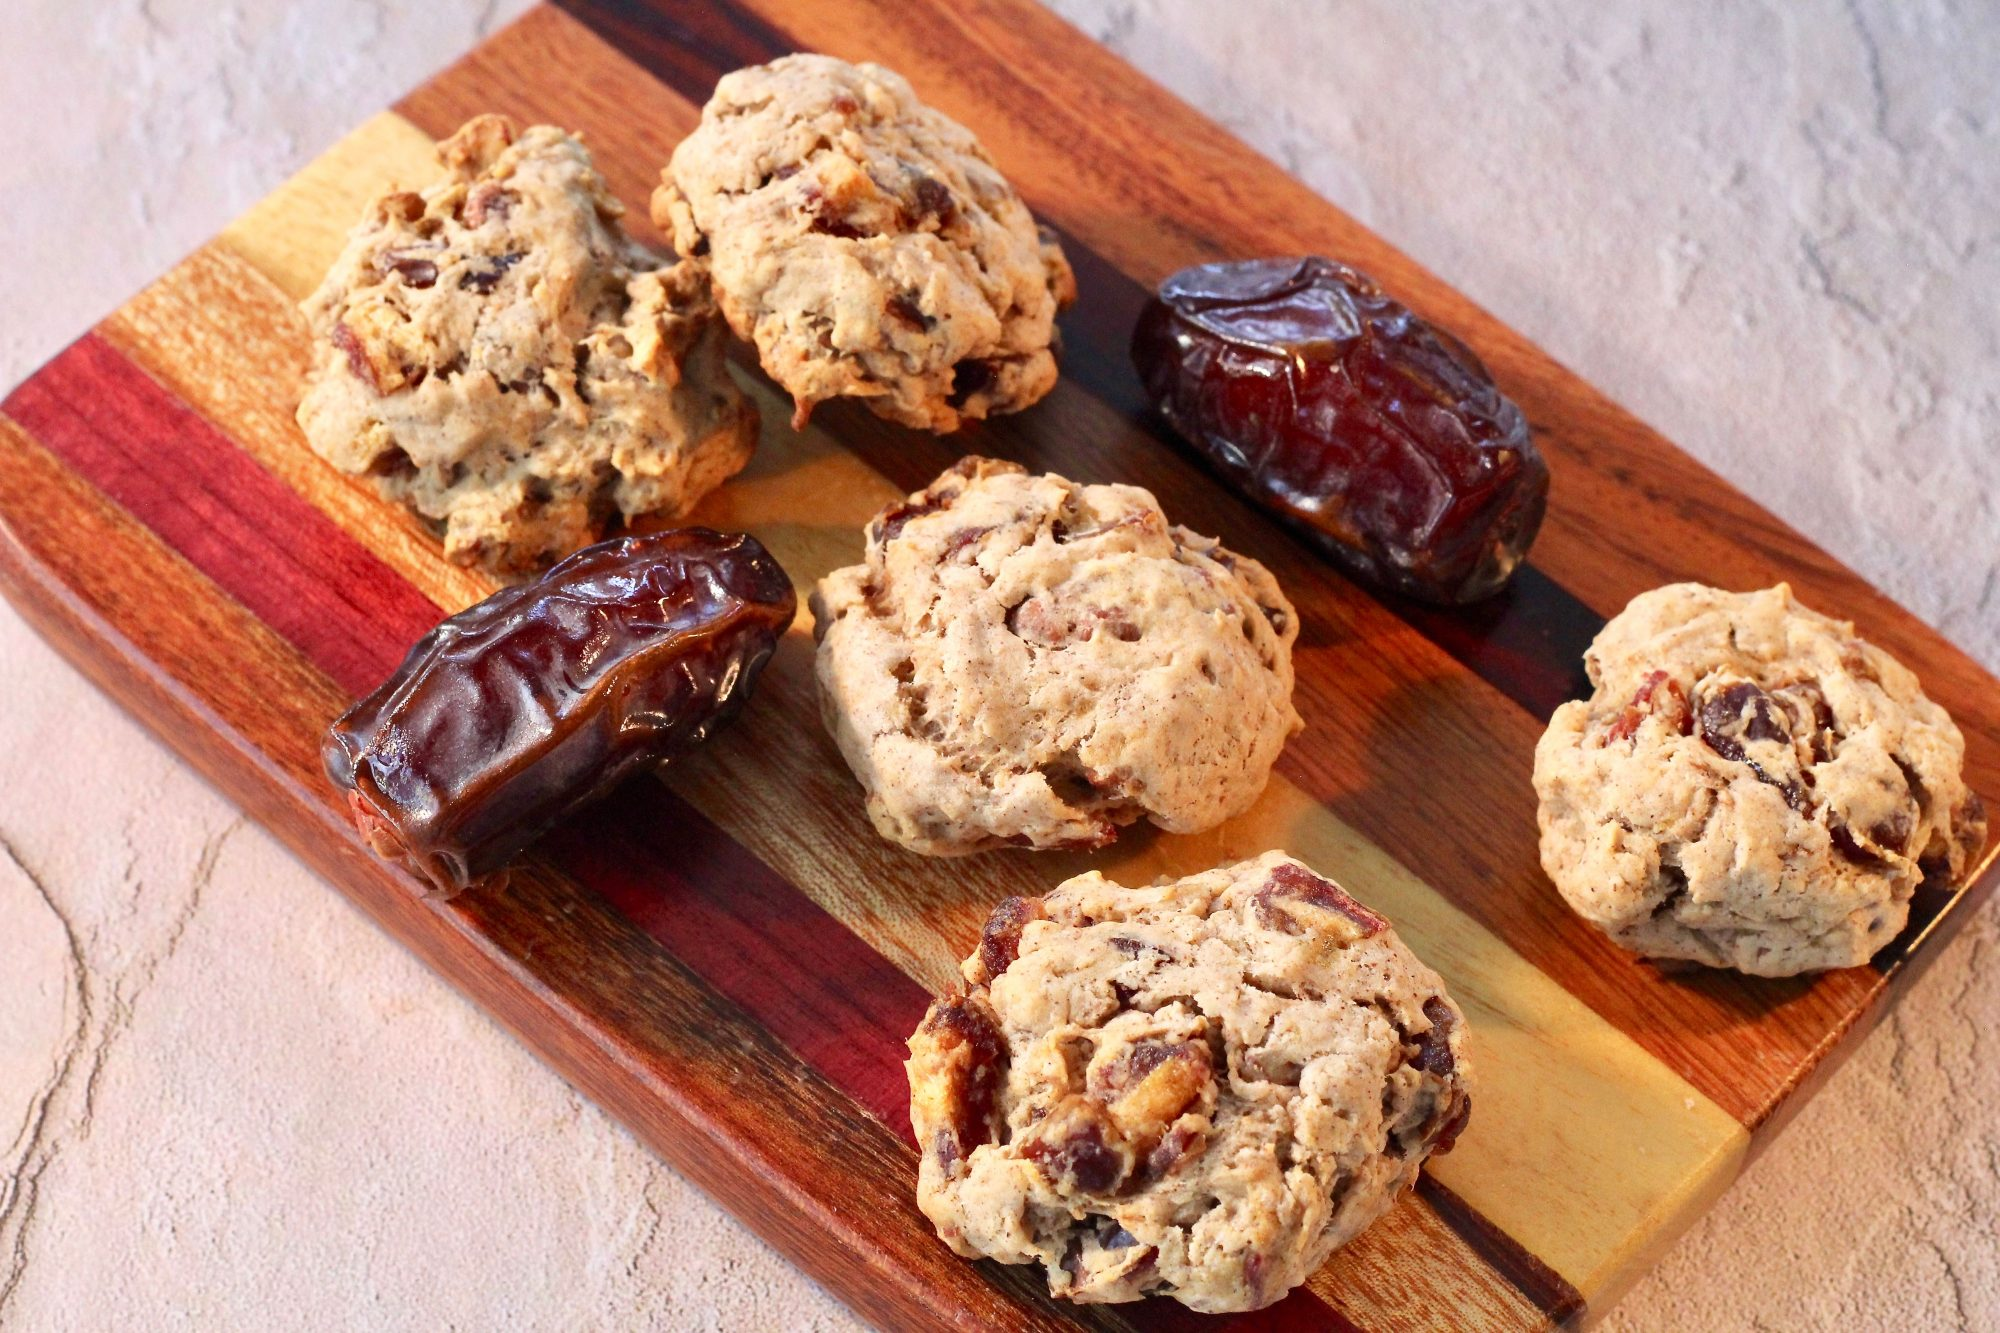 Date cookies and whole dates on wood platter